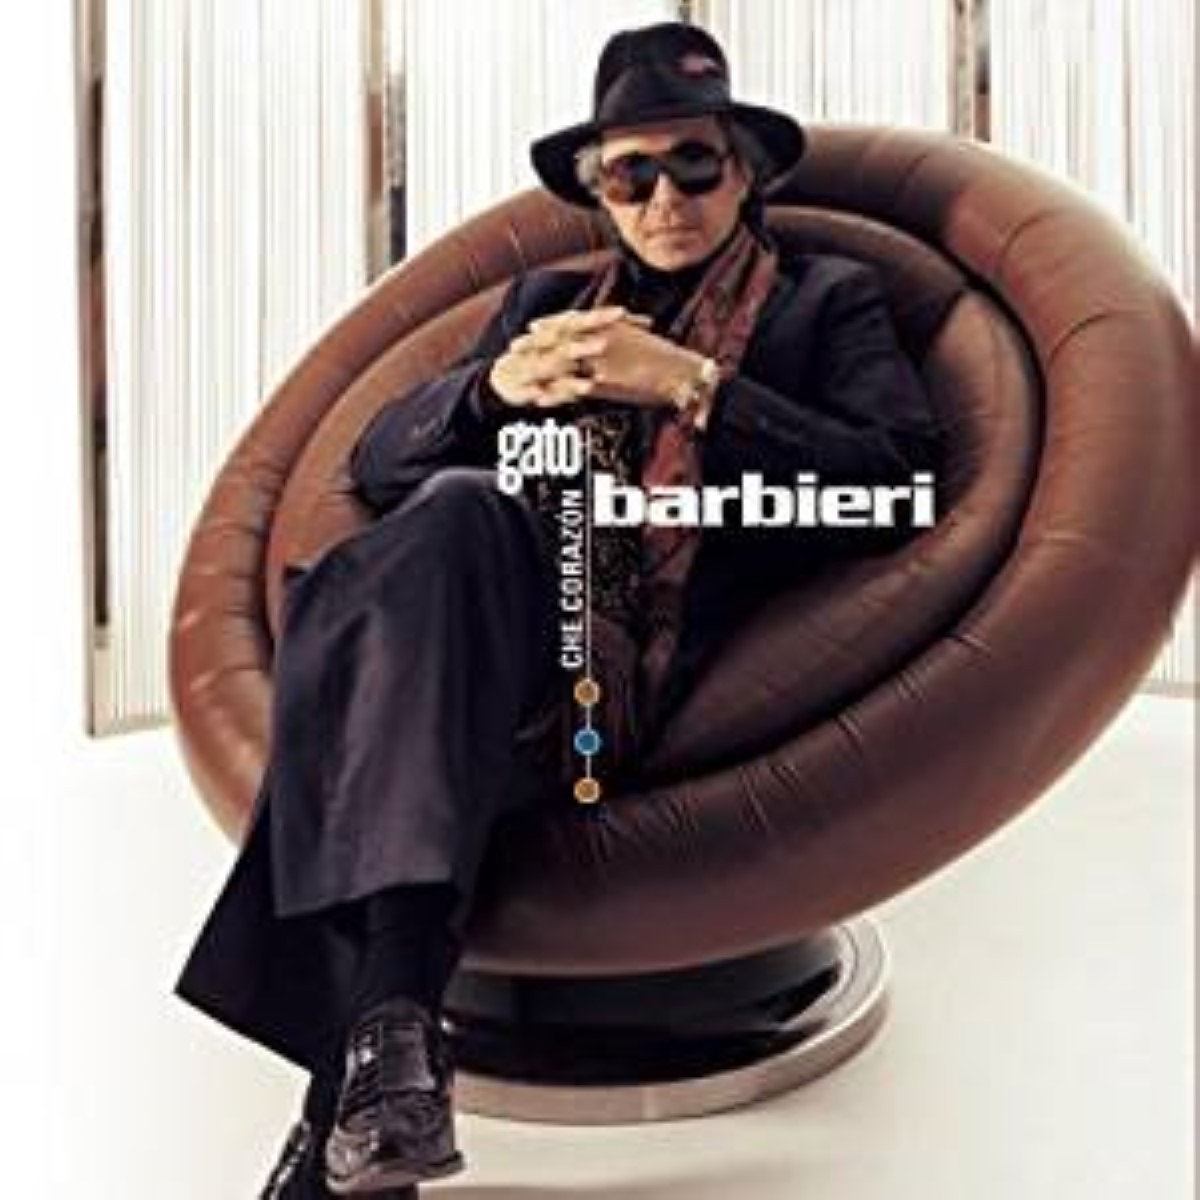 Che Corazon by Barbieri, Gato Cd